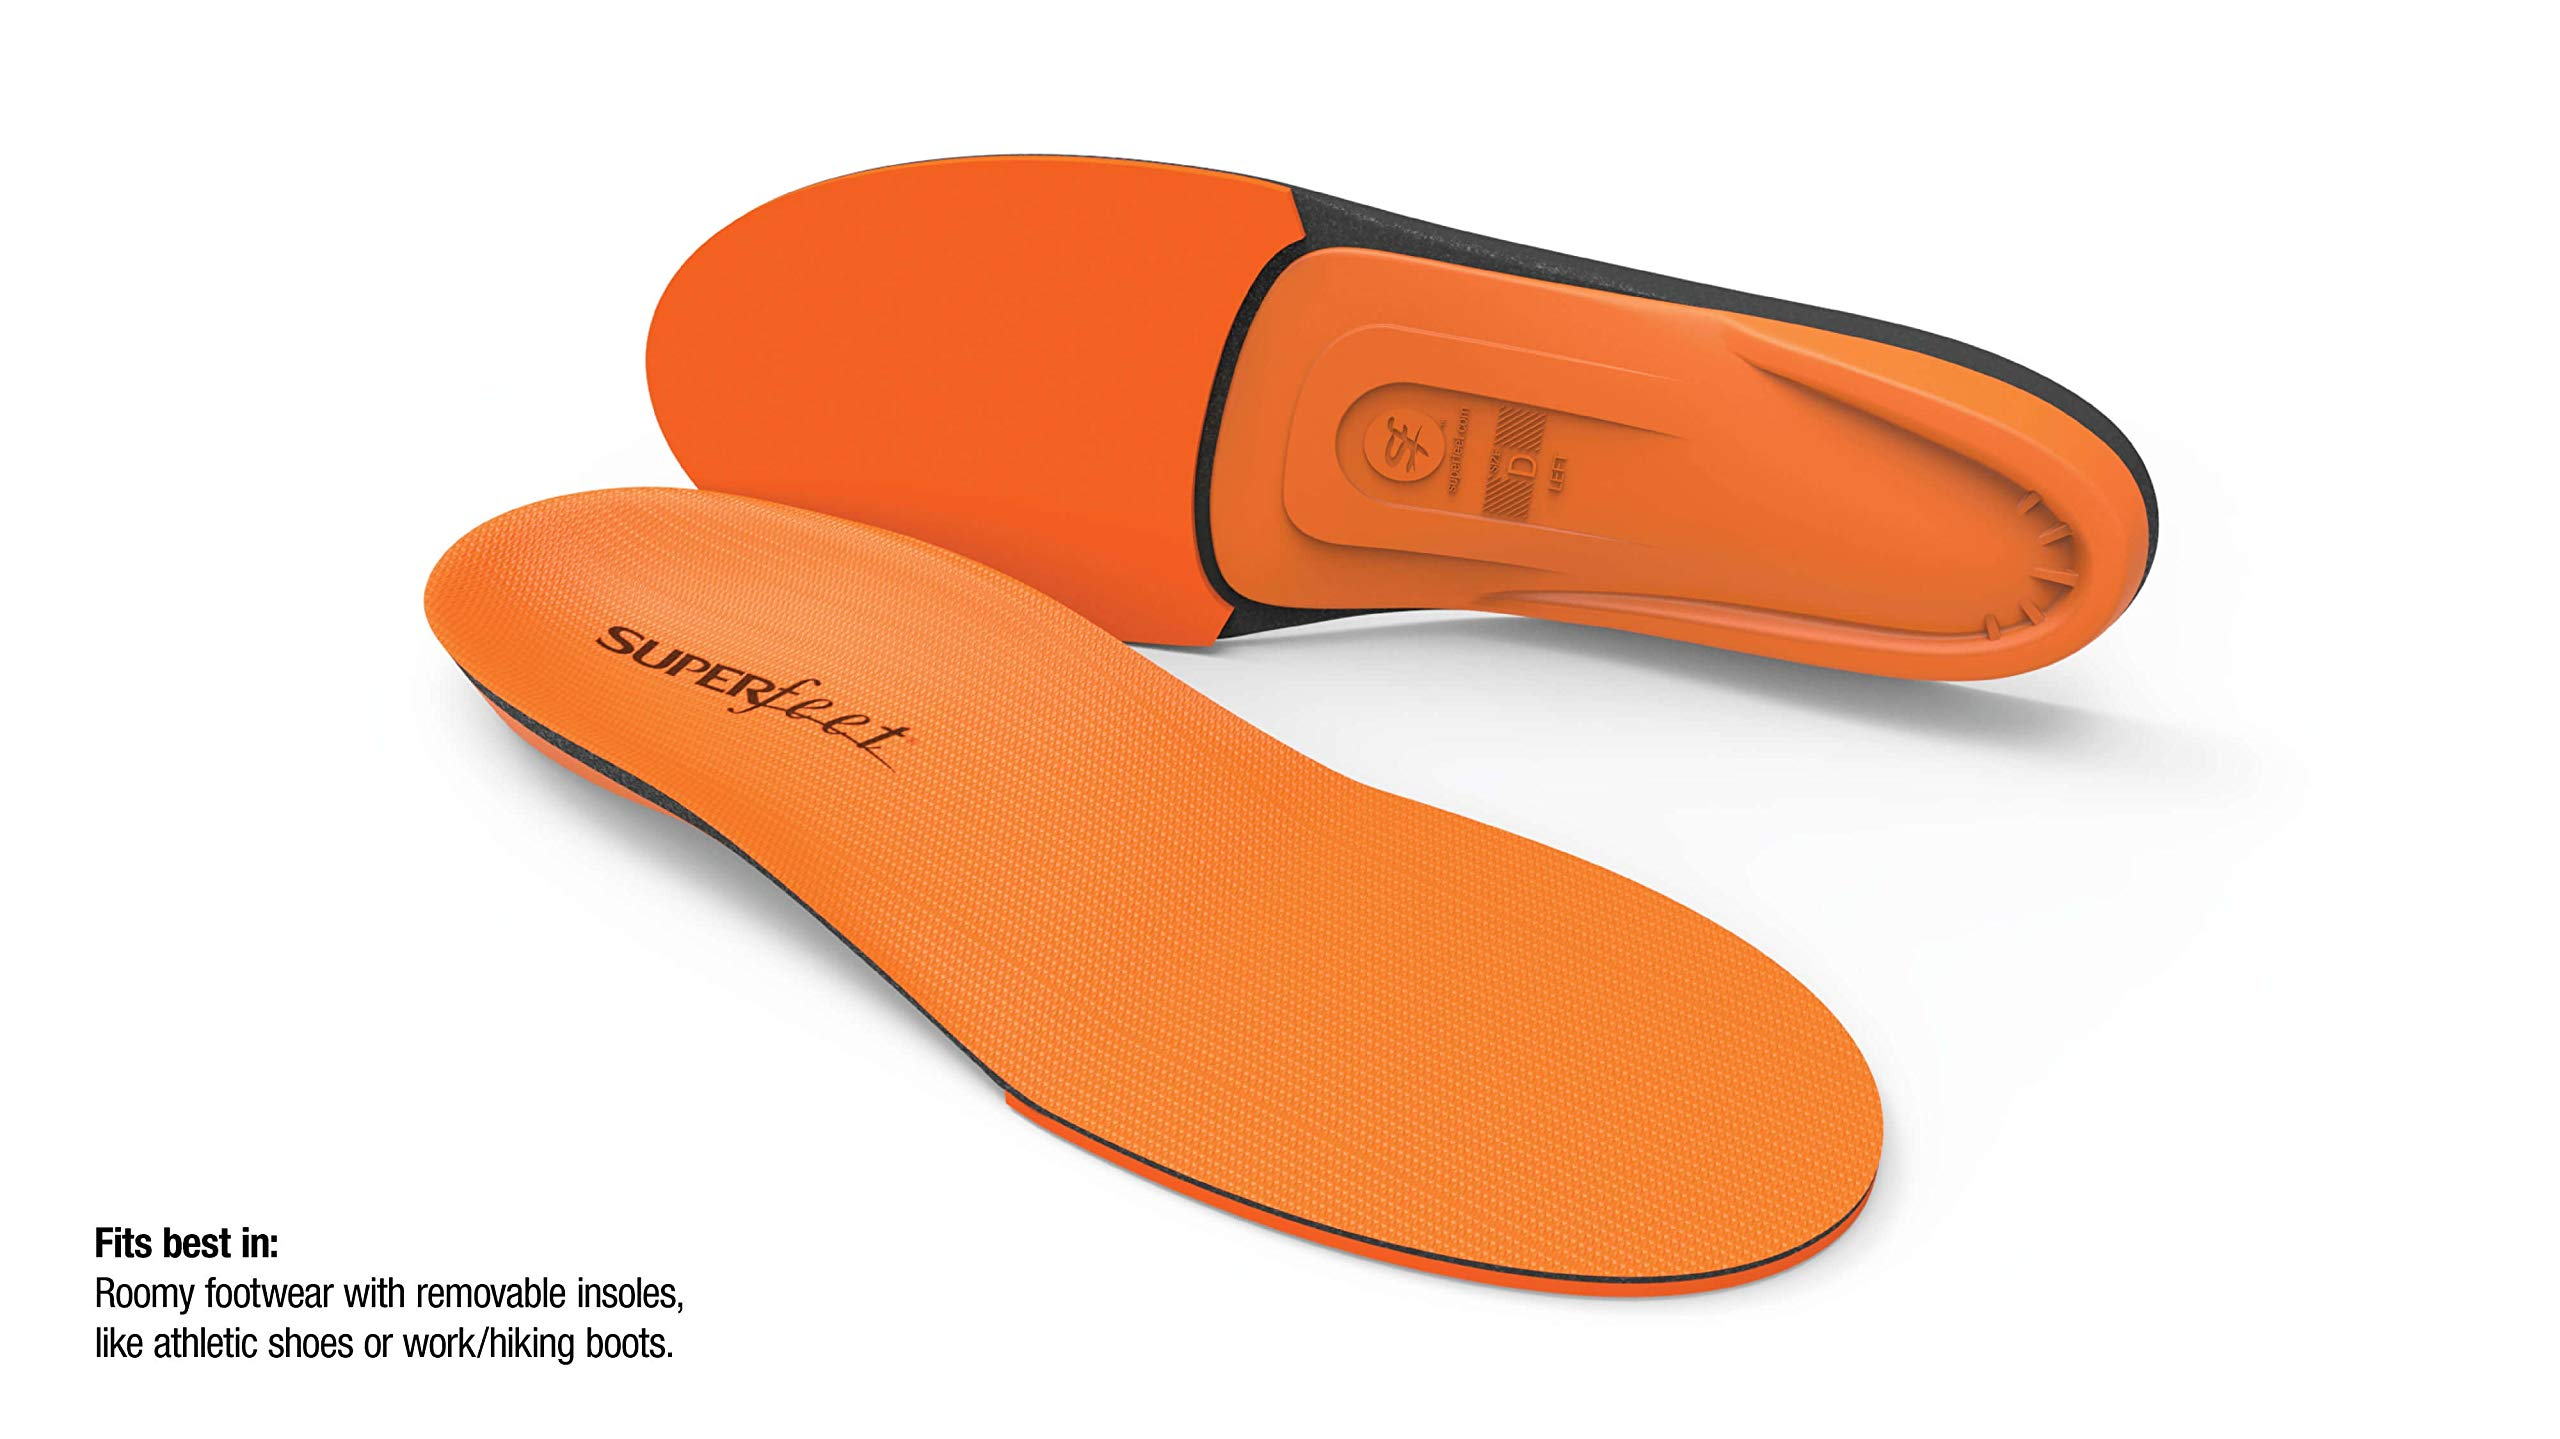 Superfeet ORANGE Insoles, High Arch Support and Forefoot Cushion Orthotic Insole for Anti-fatigue, Unisex, Orange, XXX-Large/H: 16.5+ Wmns/15.5 - 17 Mens by Superfeet (Image #2)